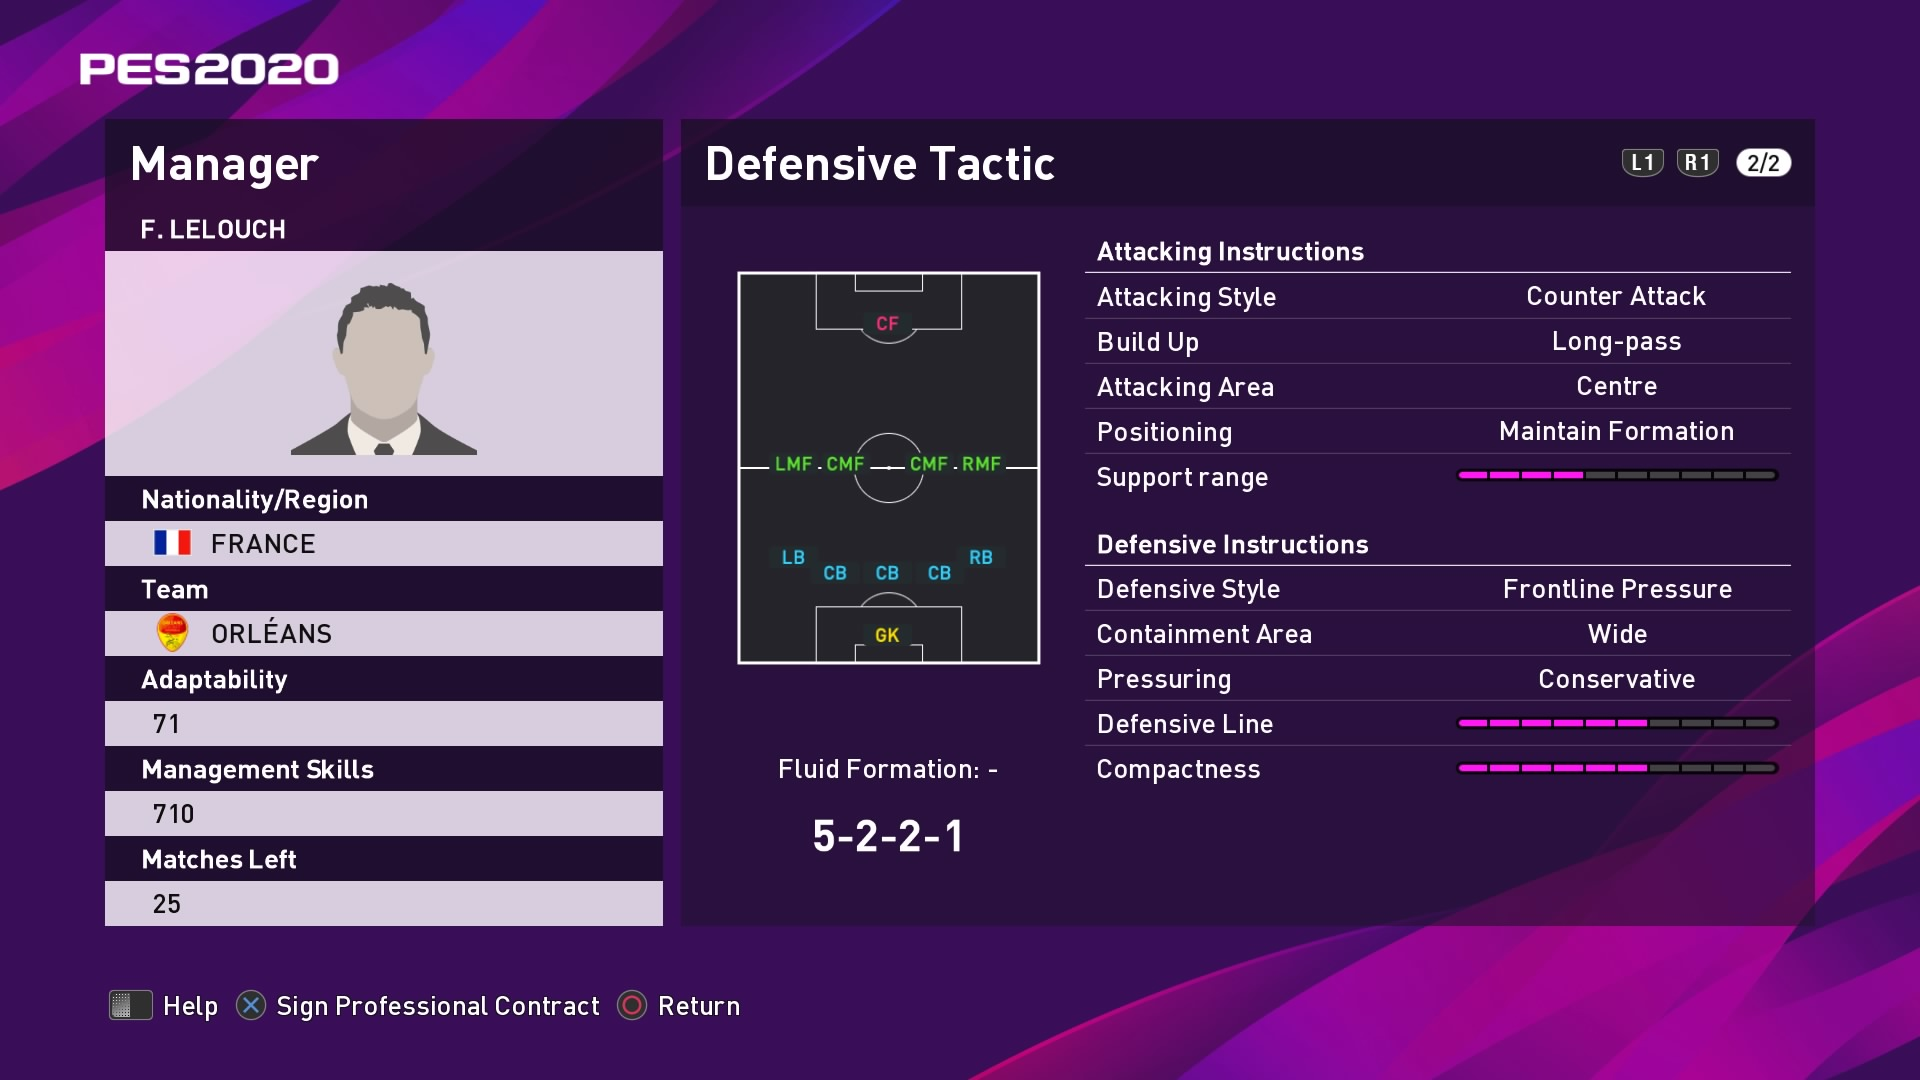 F. Lelouch (Didier Ollé-Nicolle) Defensive Tactic in PES 2020 myClub